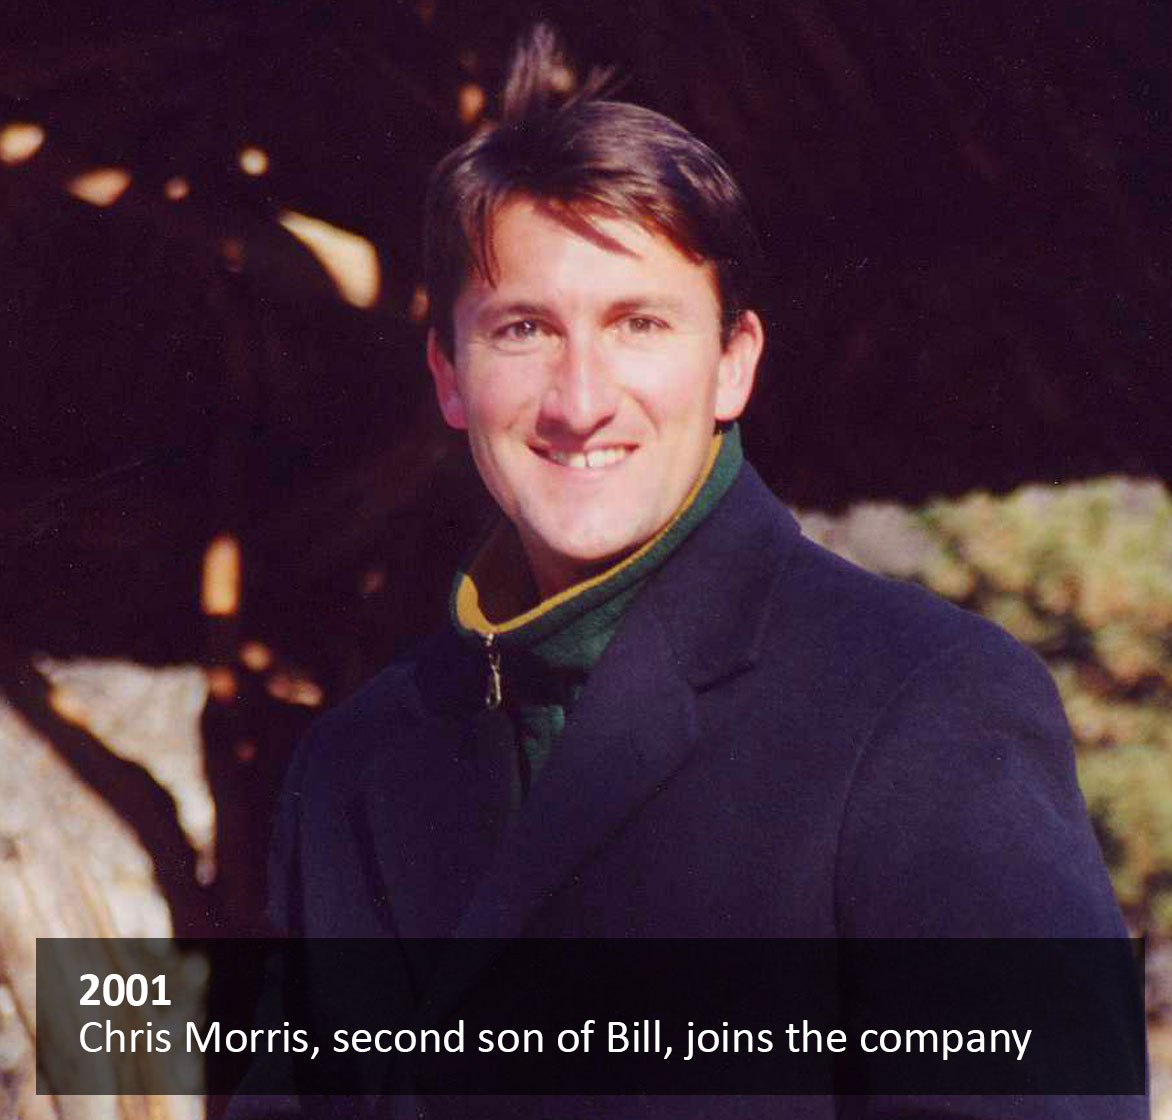 Chris Morris, second son of Bill, joins the company